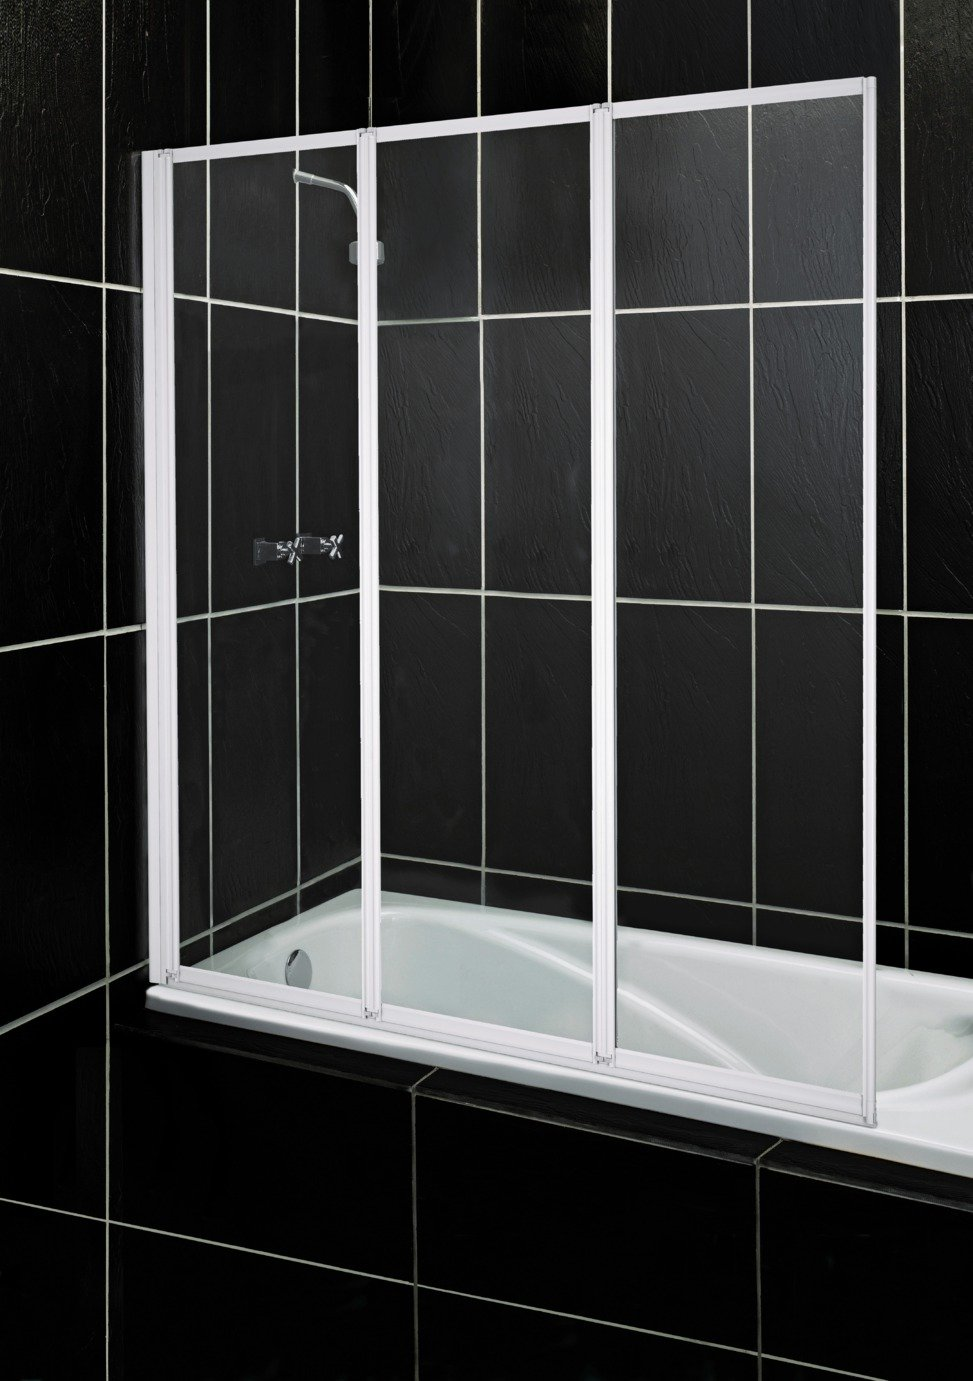 Image of Aqualux Fully Framed White 3 Fold Bath & Shower Screen